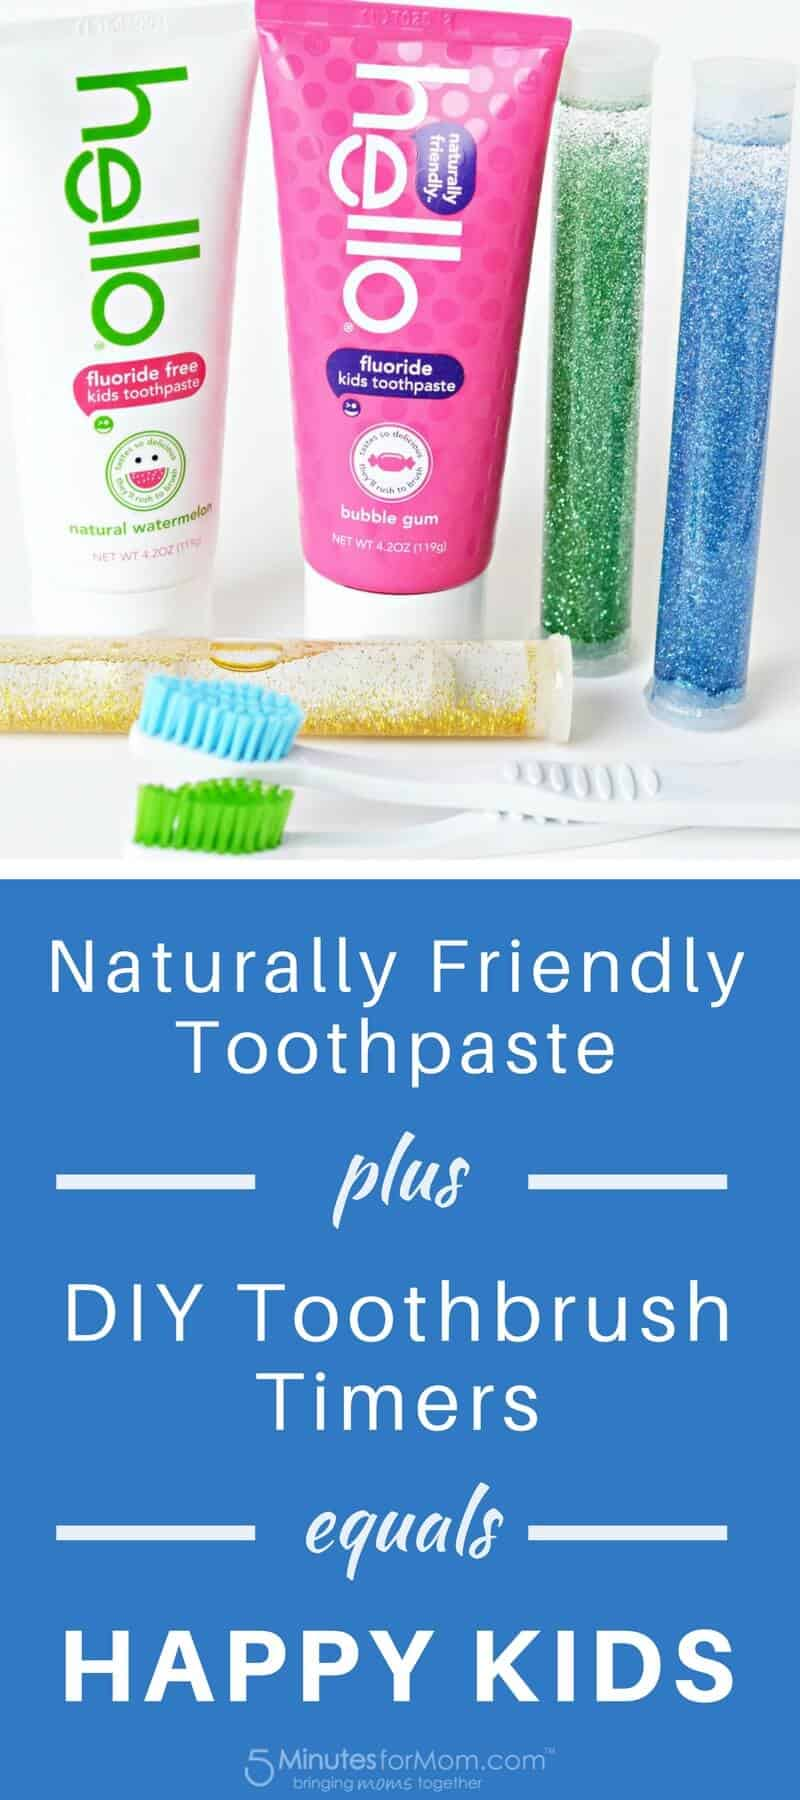 Naturally Friendly Toothpaste plus DIY Toothbrush Timers equals Happy Kids